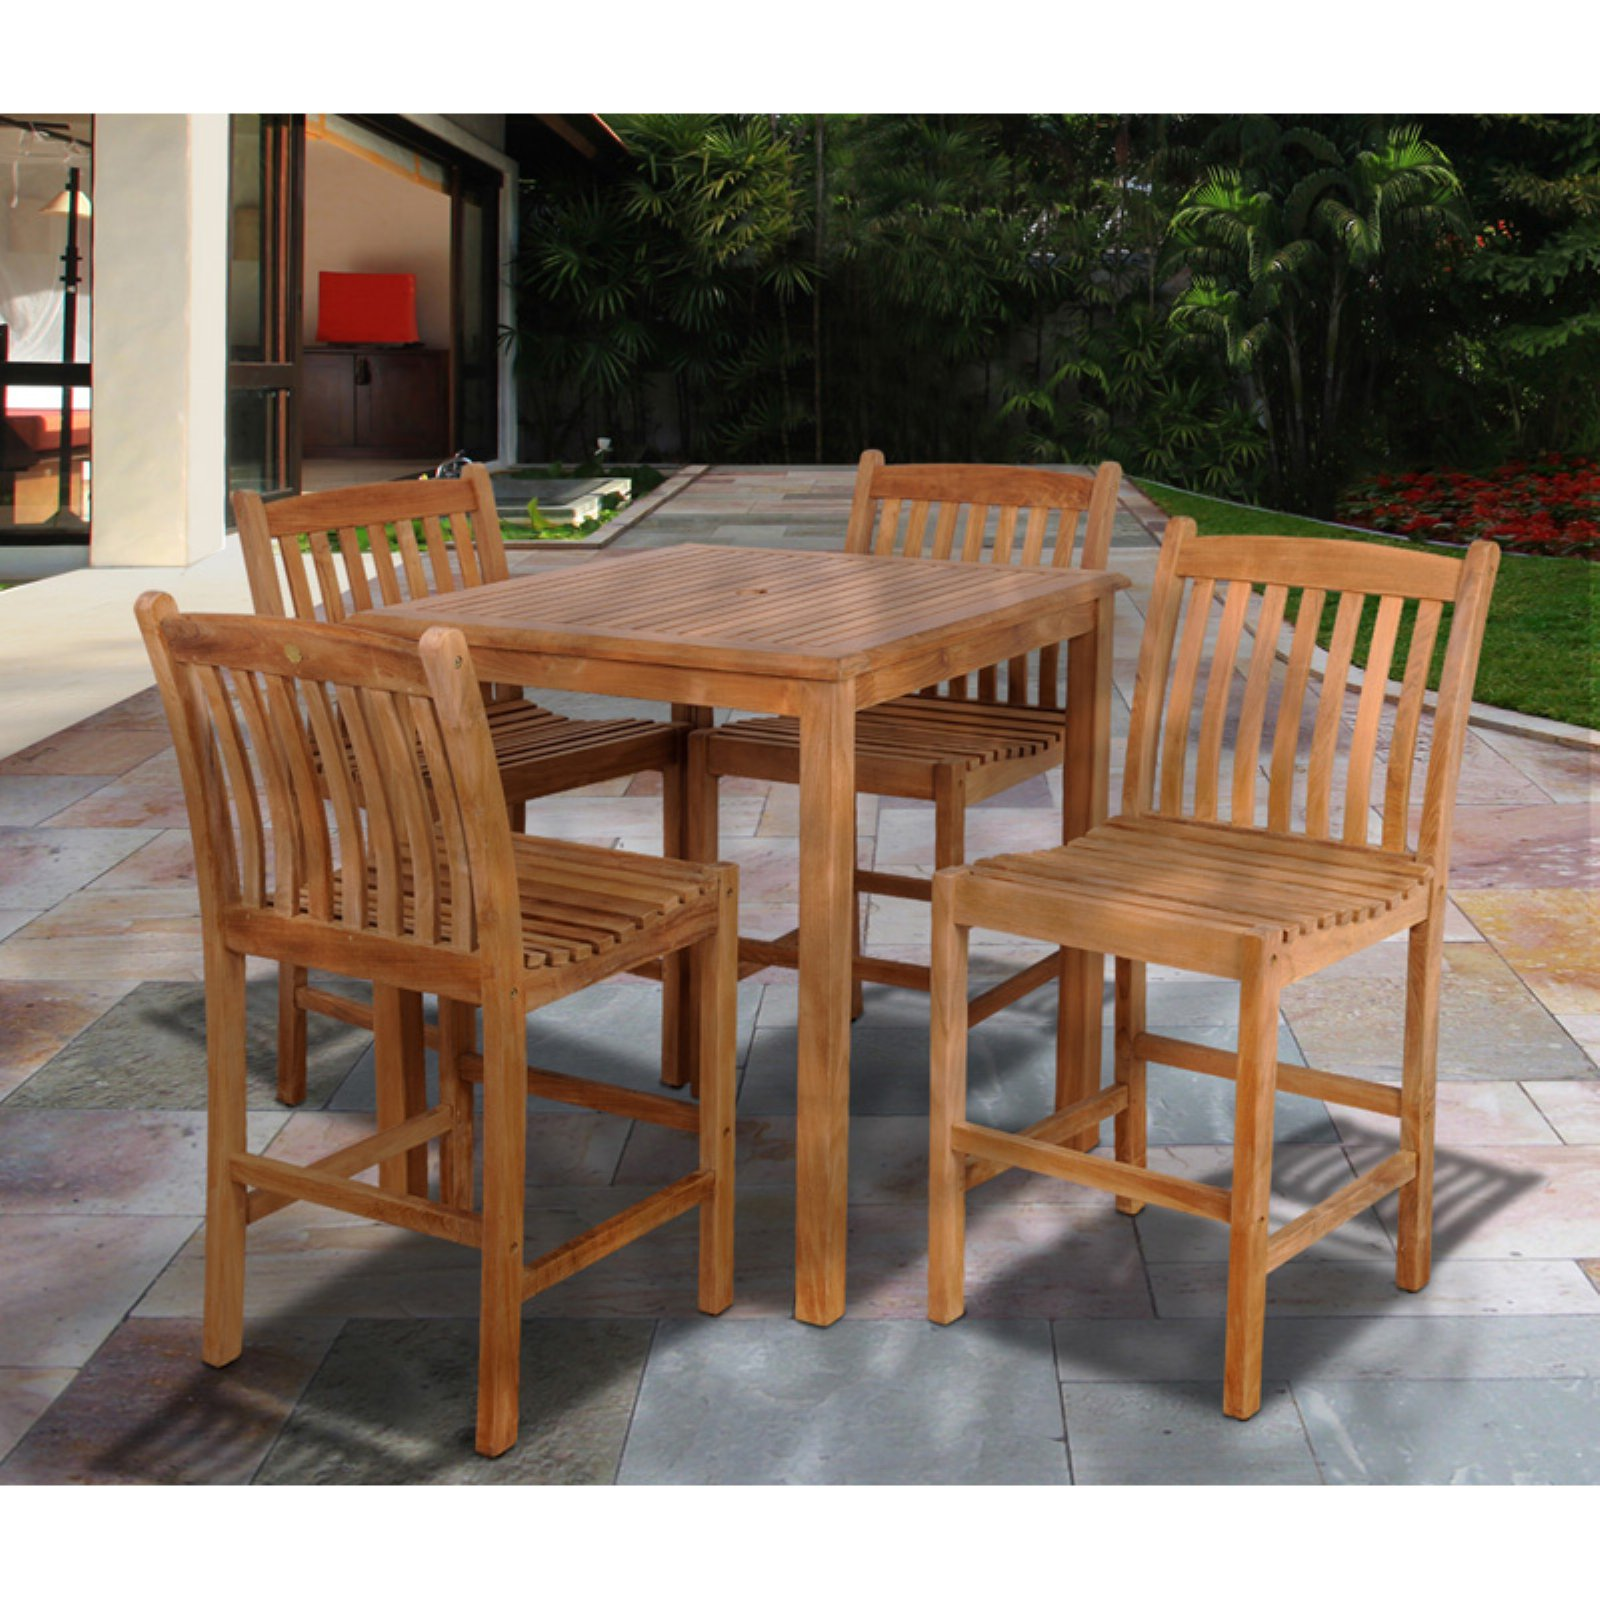 Amazonia Aberdeen 5 Piece Teak Square Patio Bar Height Dining Set